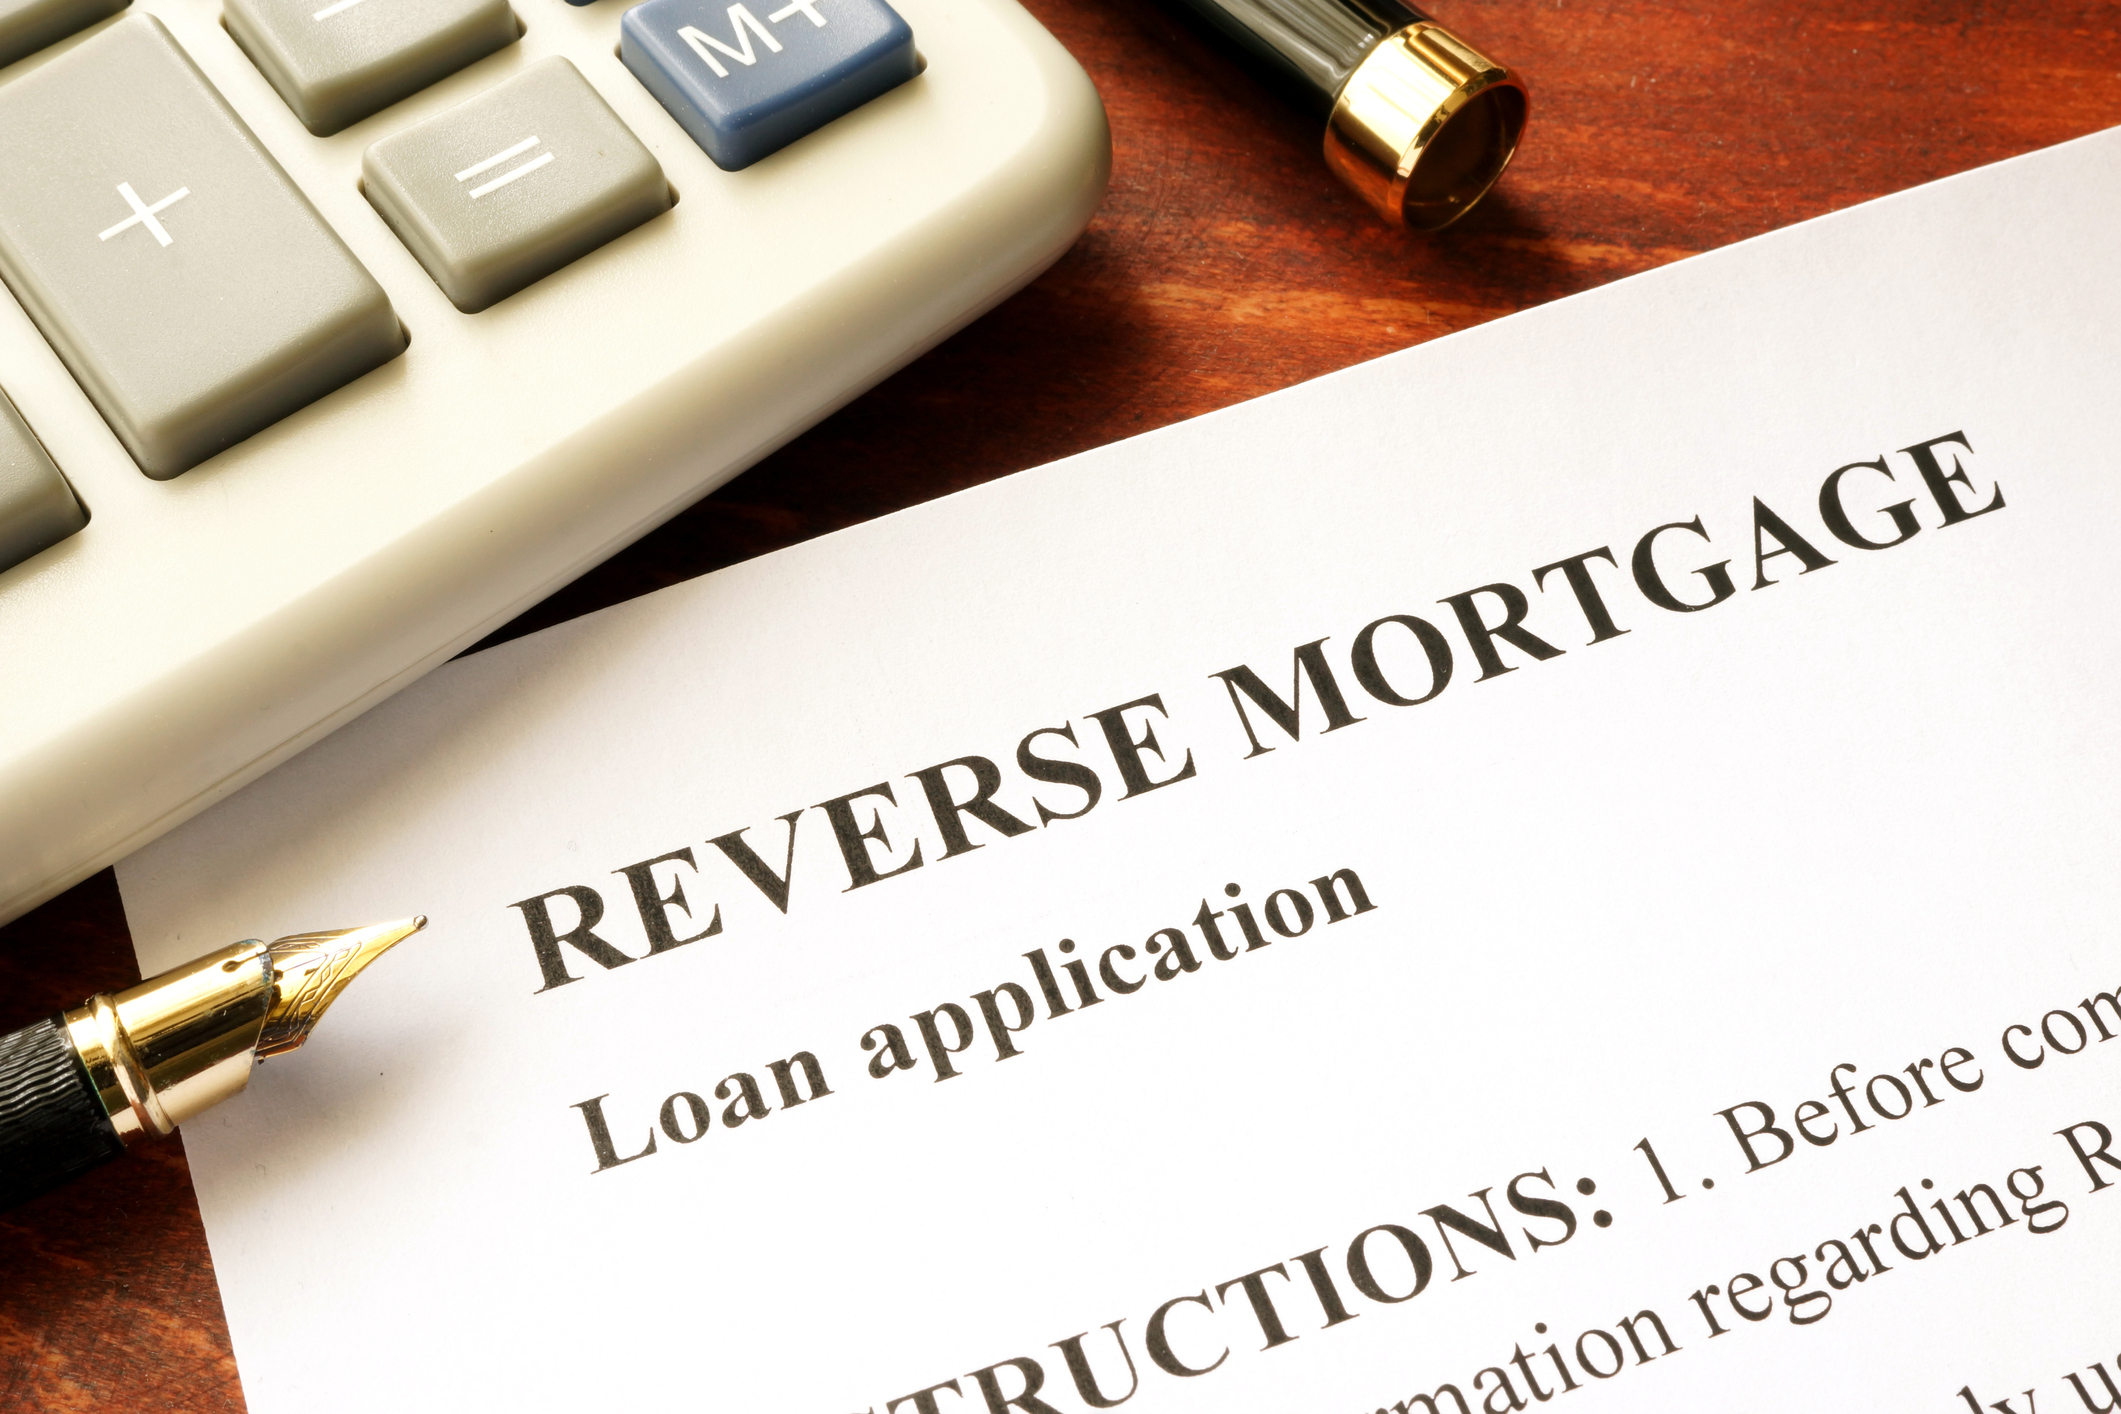 Reverse Mortgage Facts Vs. Fiction: Accessing Home Equity Through a Reverse Mortgage